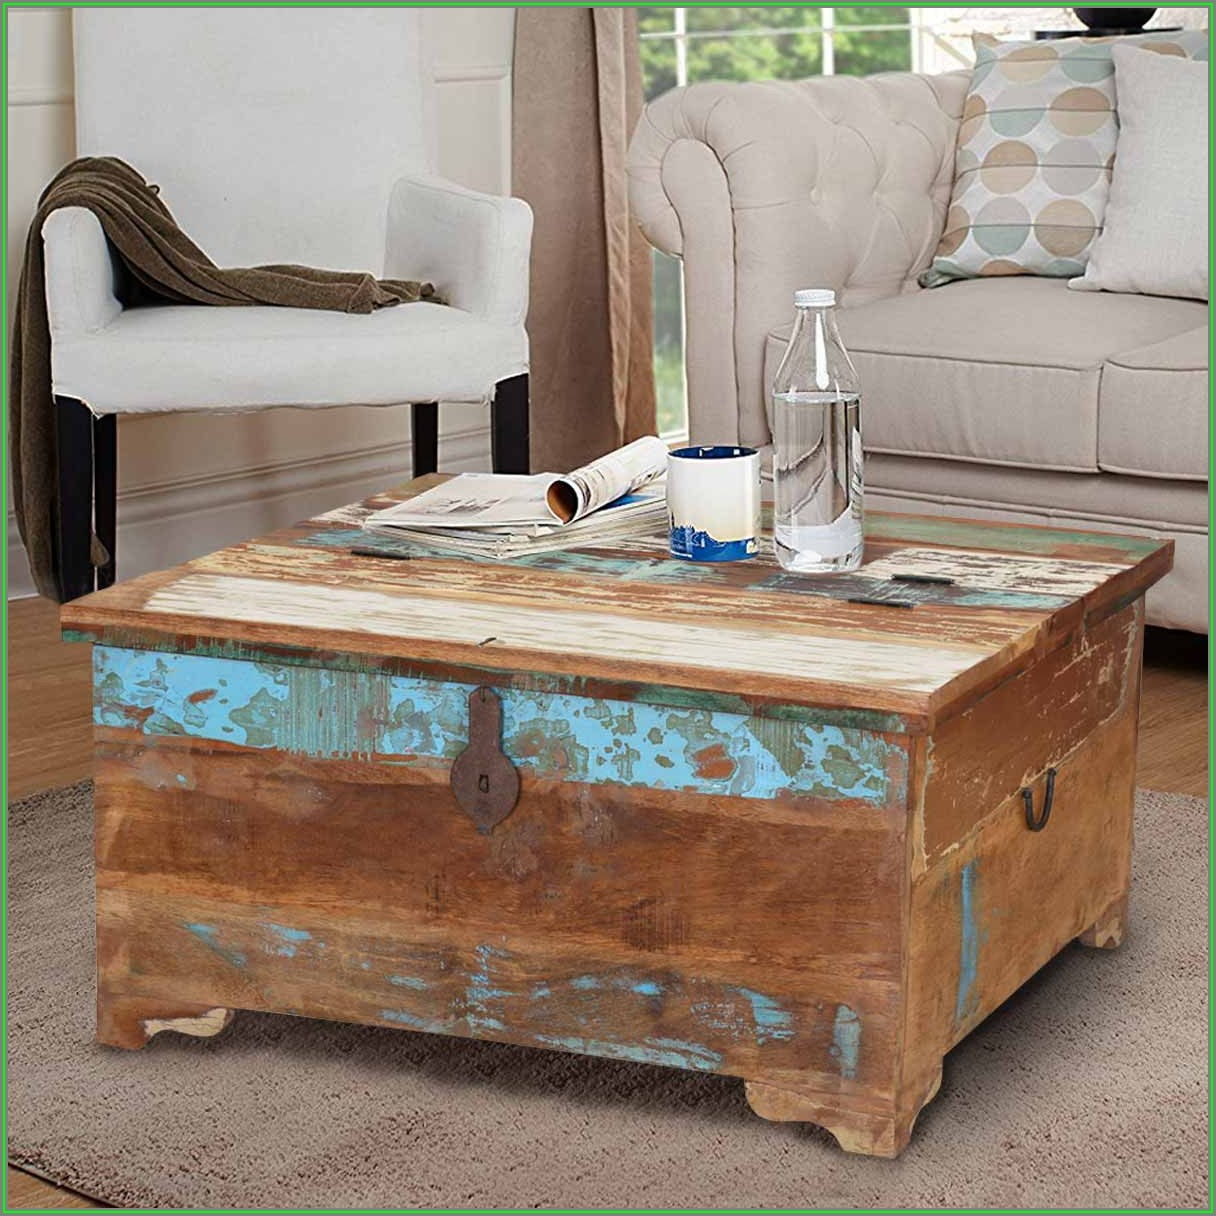 Reclaimed Wood Coffee Table With Storage